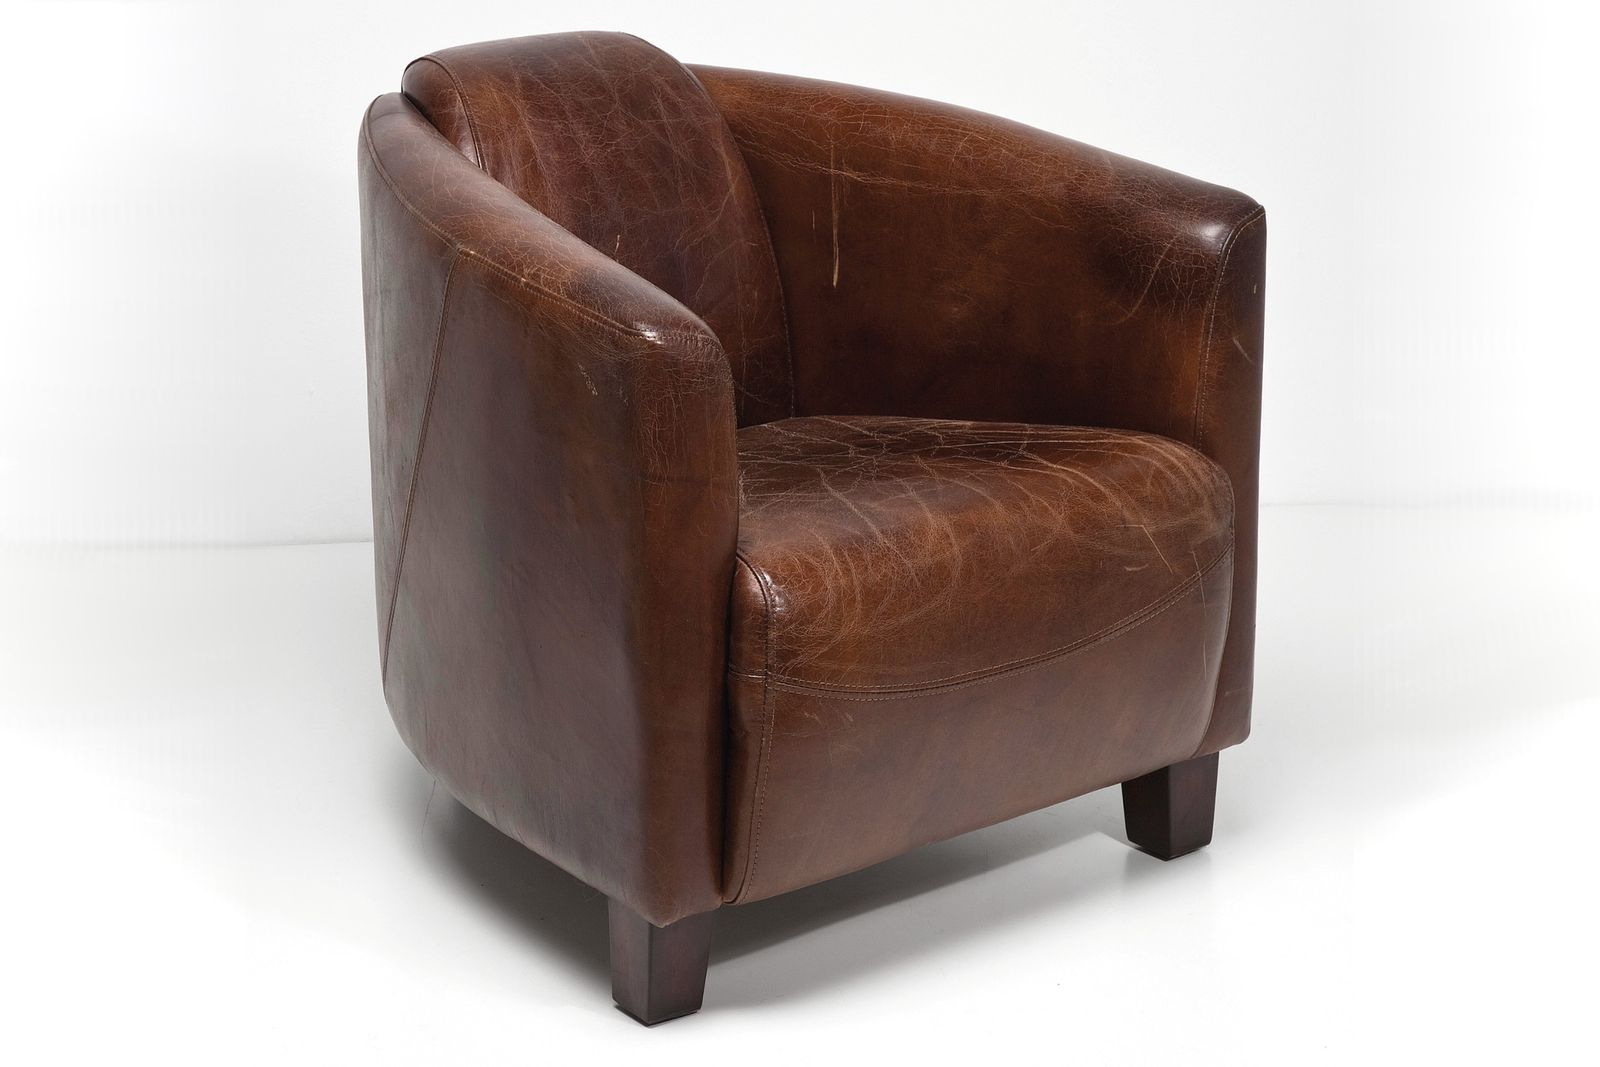 dewall sessel cigar lounge brown ledersessel loungesessel. Black Bedroom Furniture Sets. Home Design Ideas